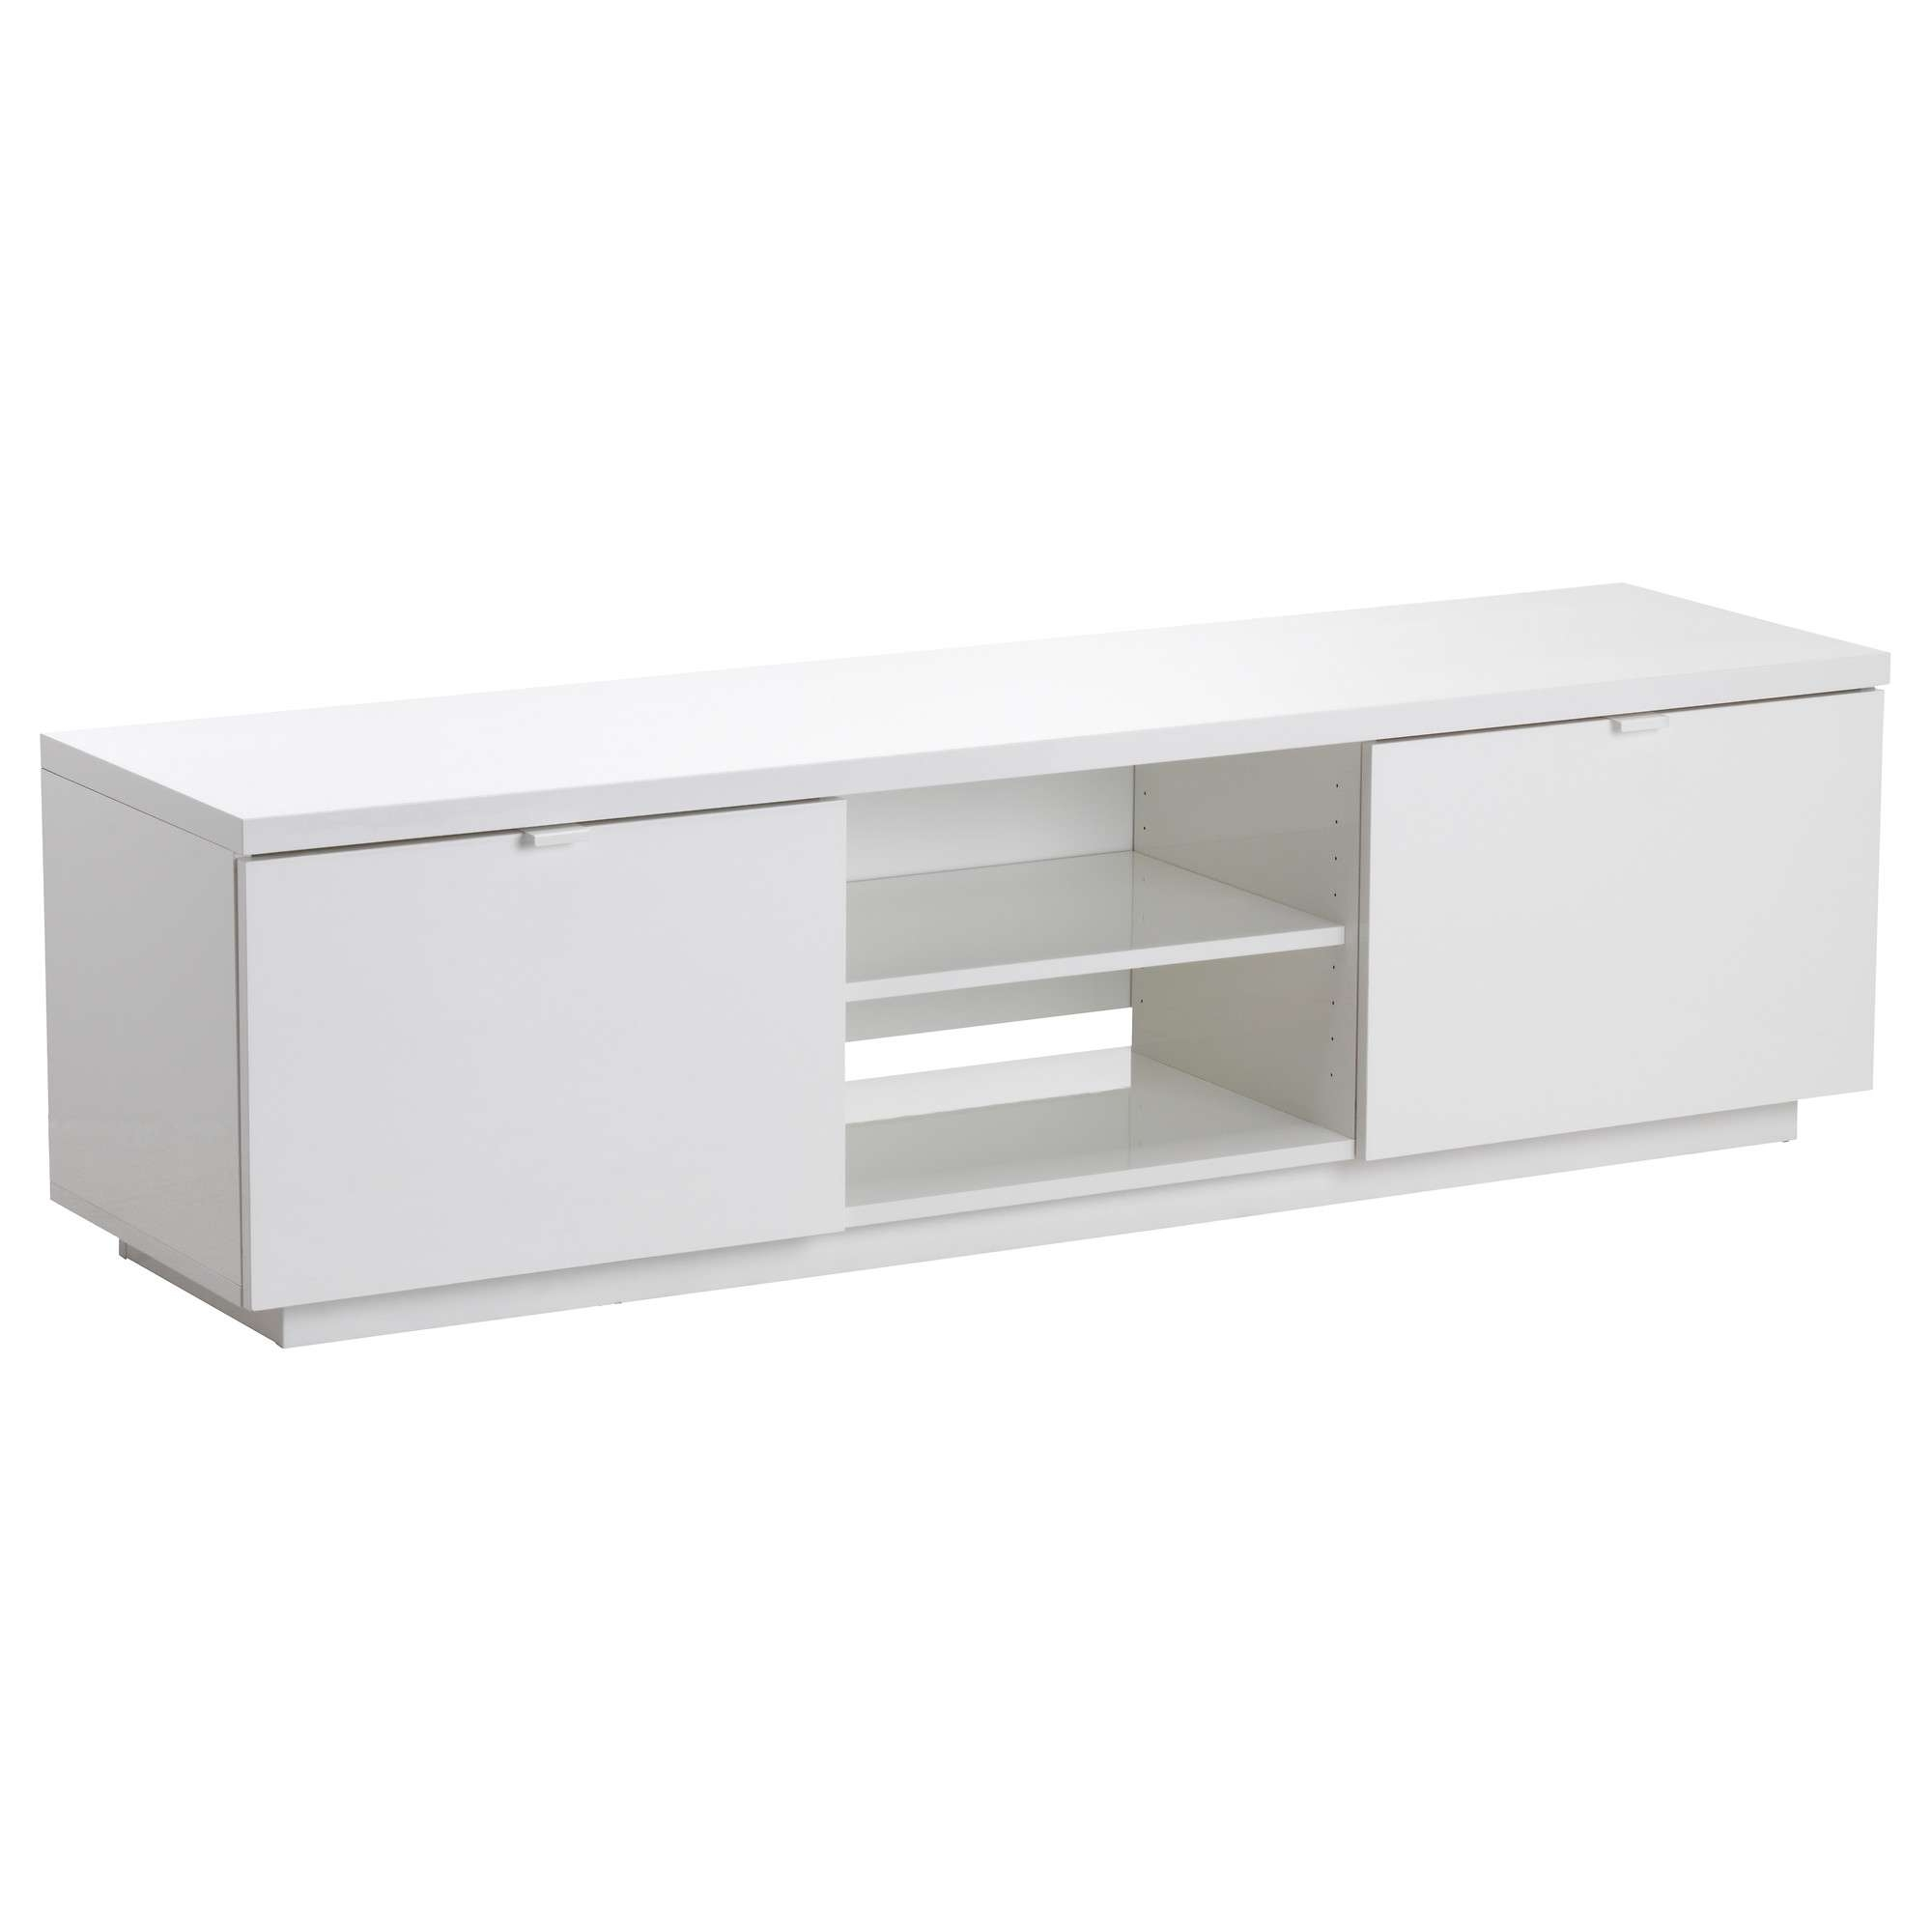 Byås Tv Unit – Ikea With Regard To High Gloss White Tv Cabinets (View 4 of 20)